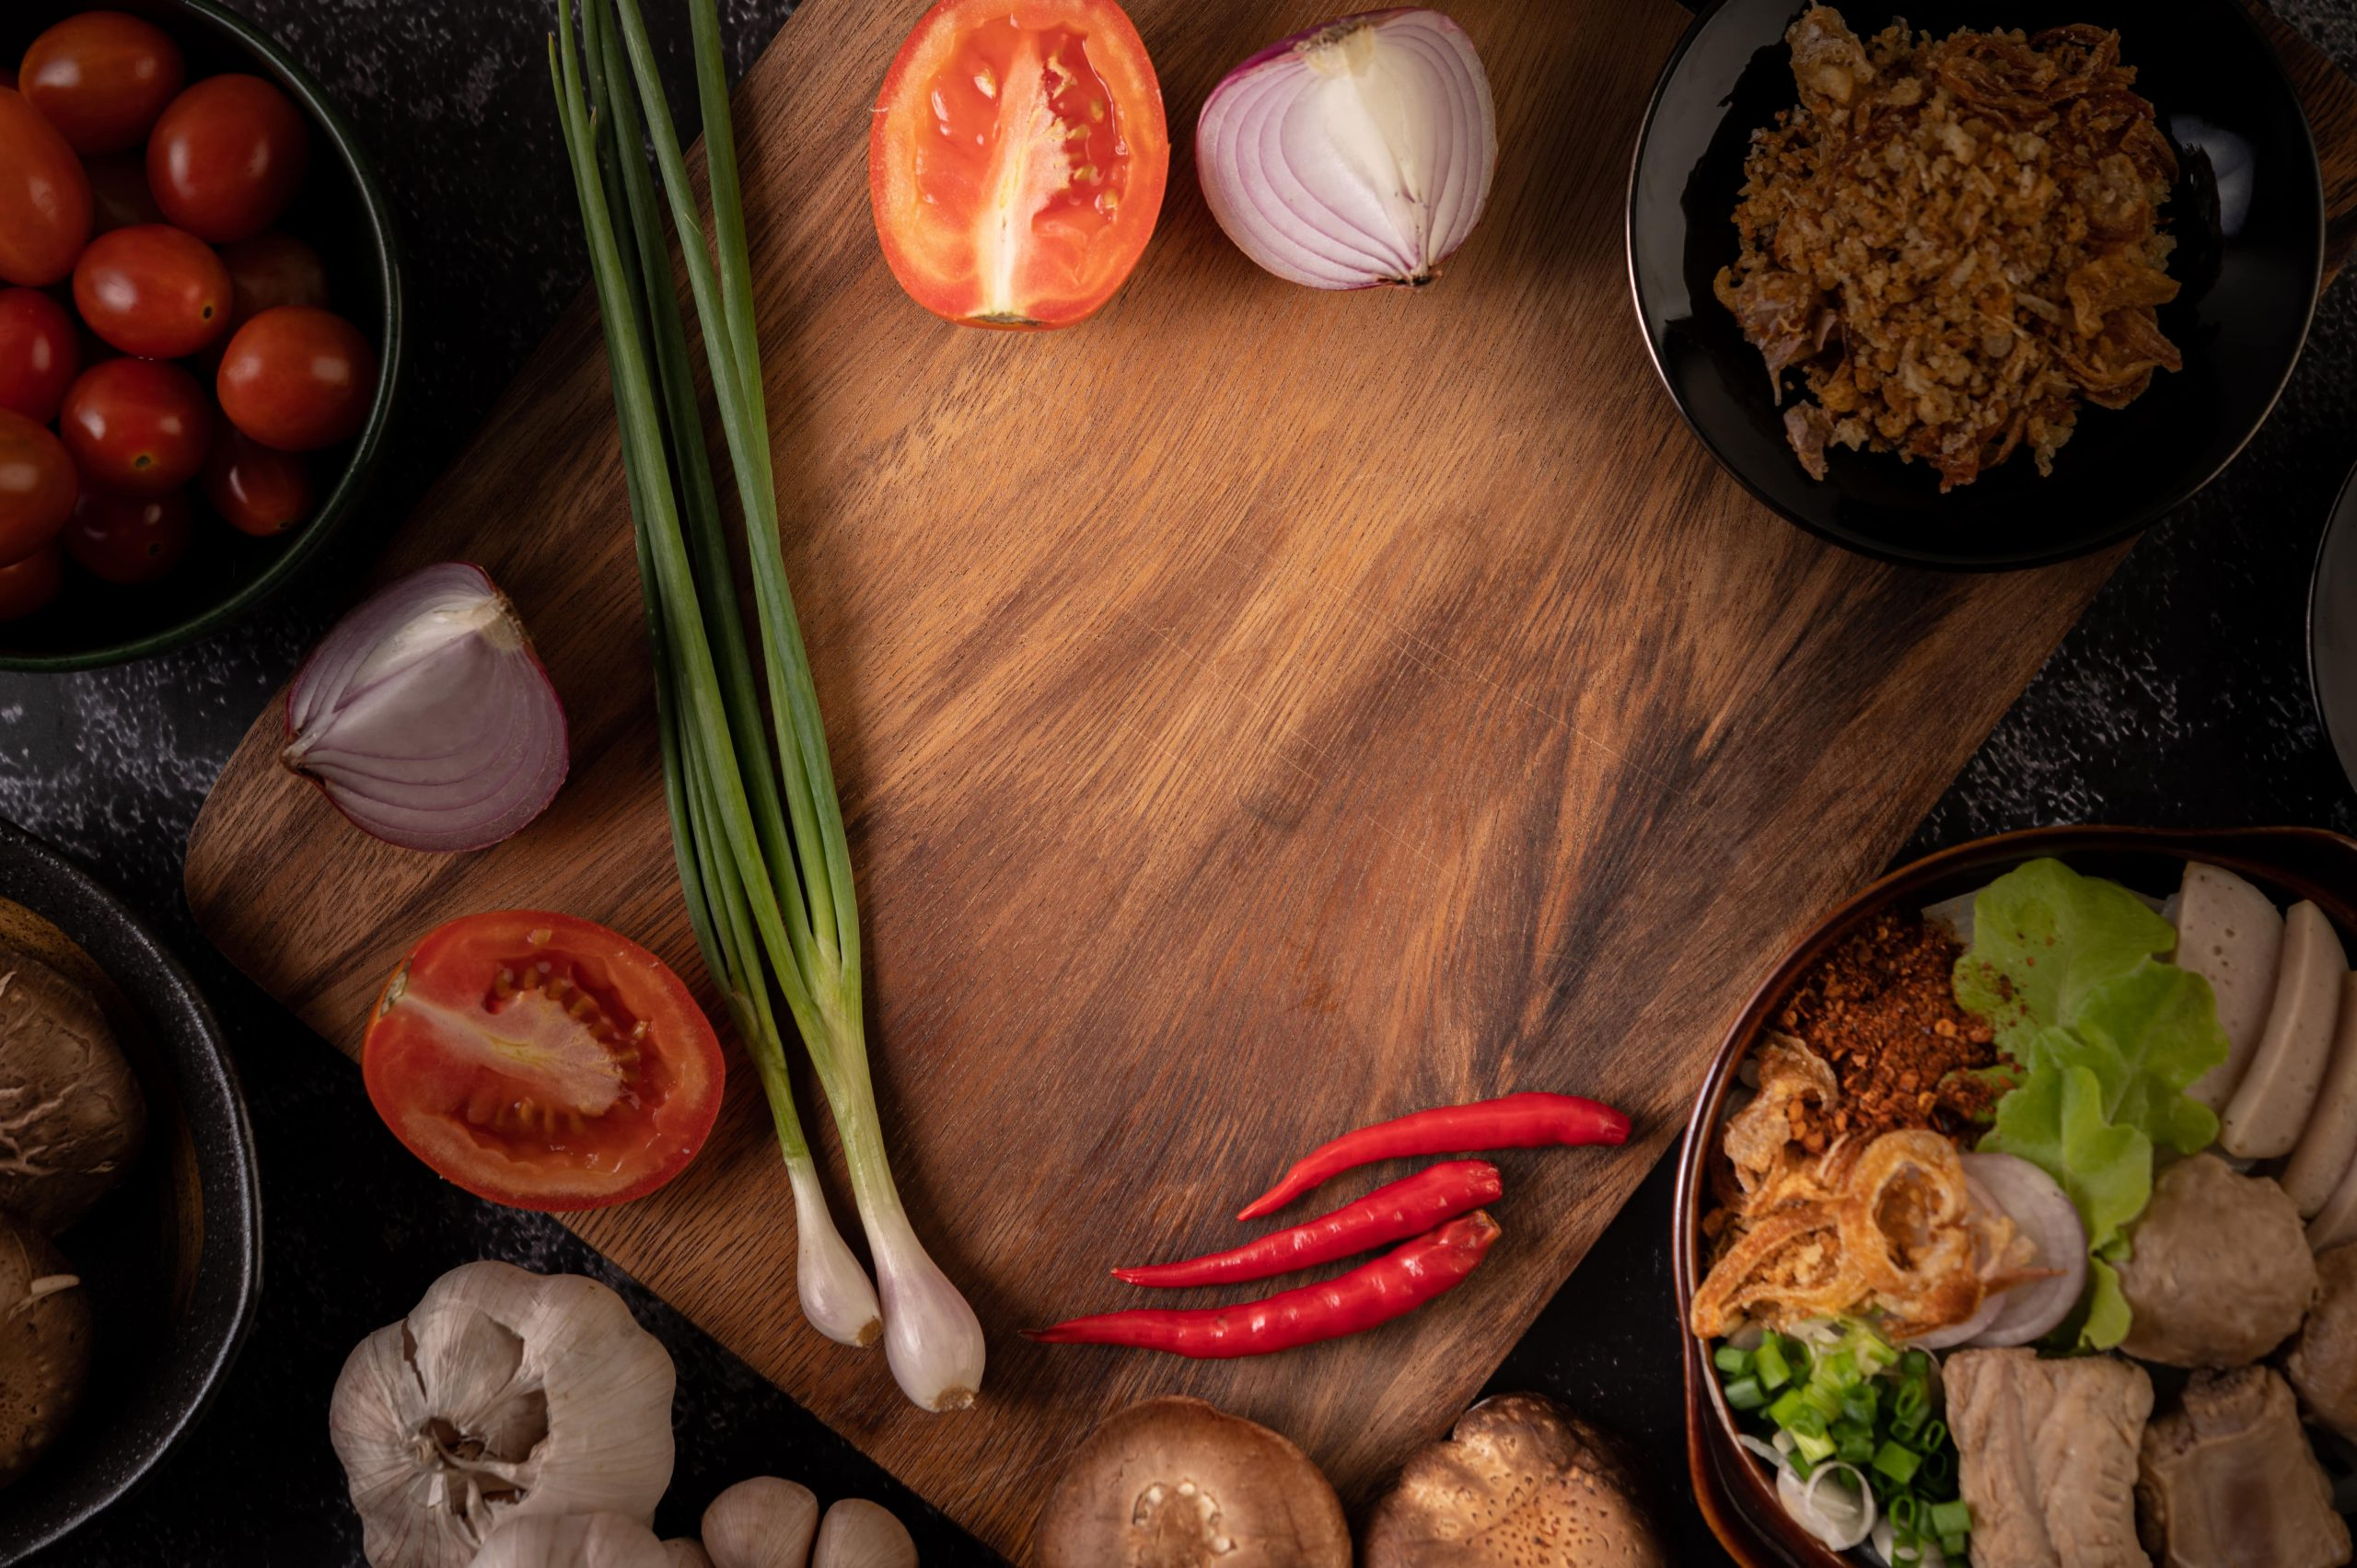 Cooking with Newfire: Celebrating Our 5-Year Journey of Growth & Diversity